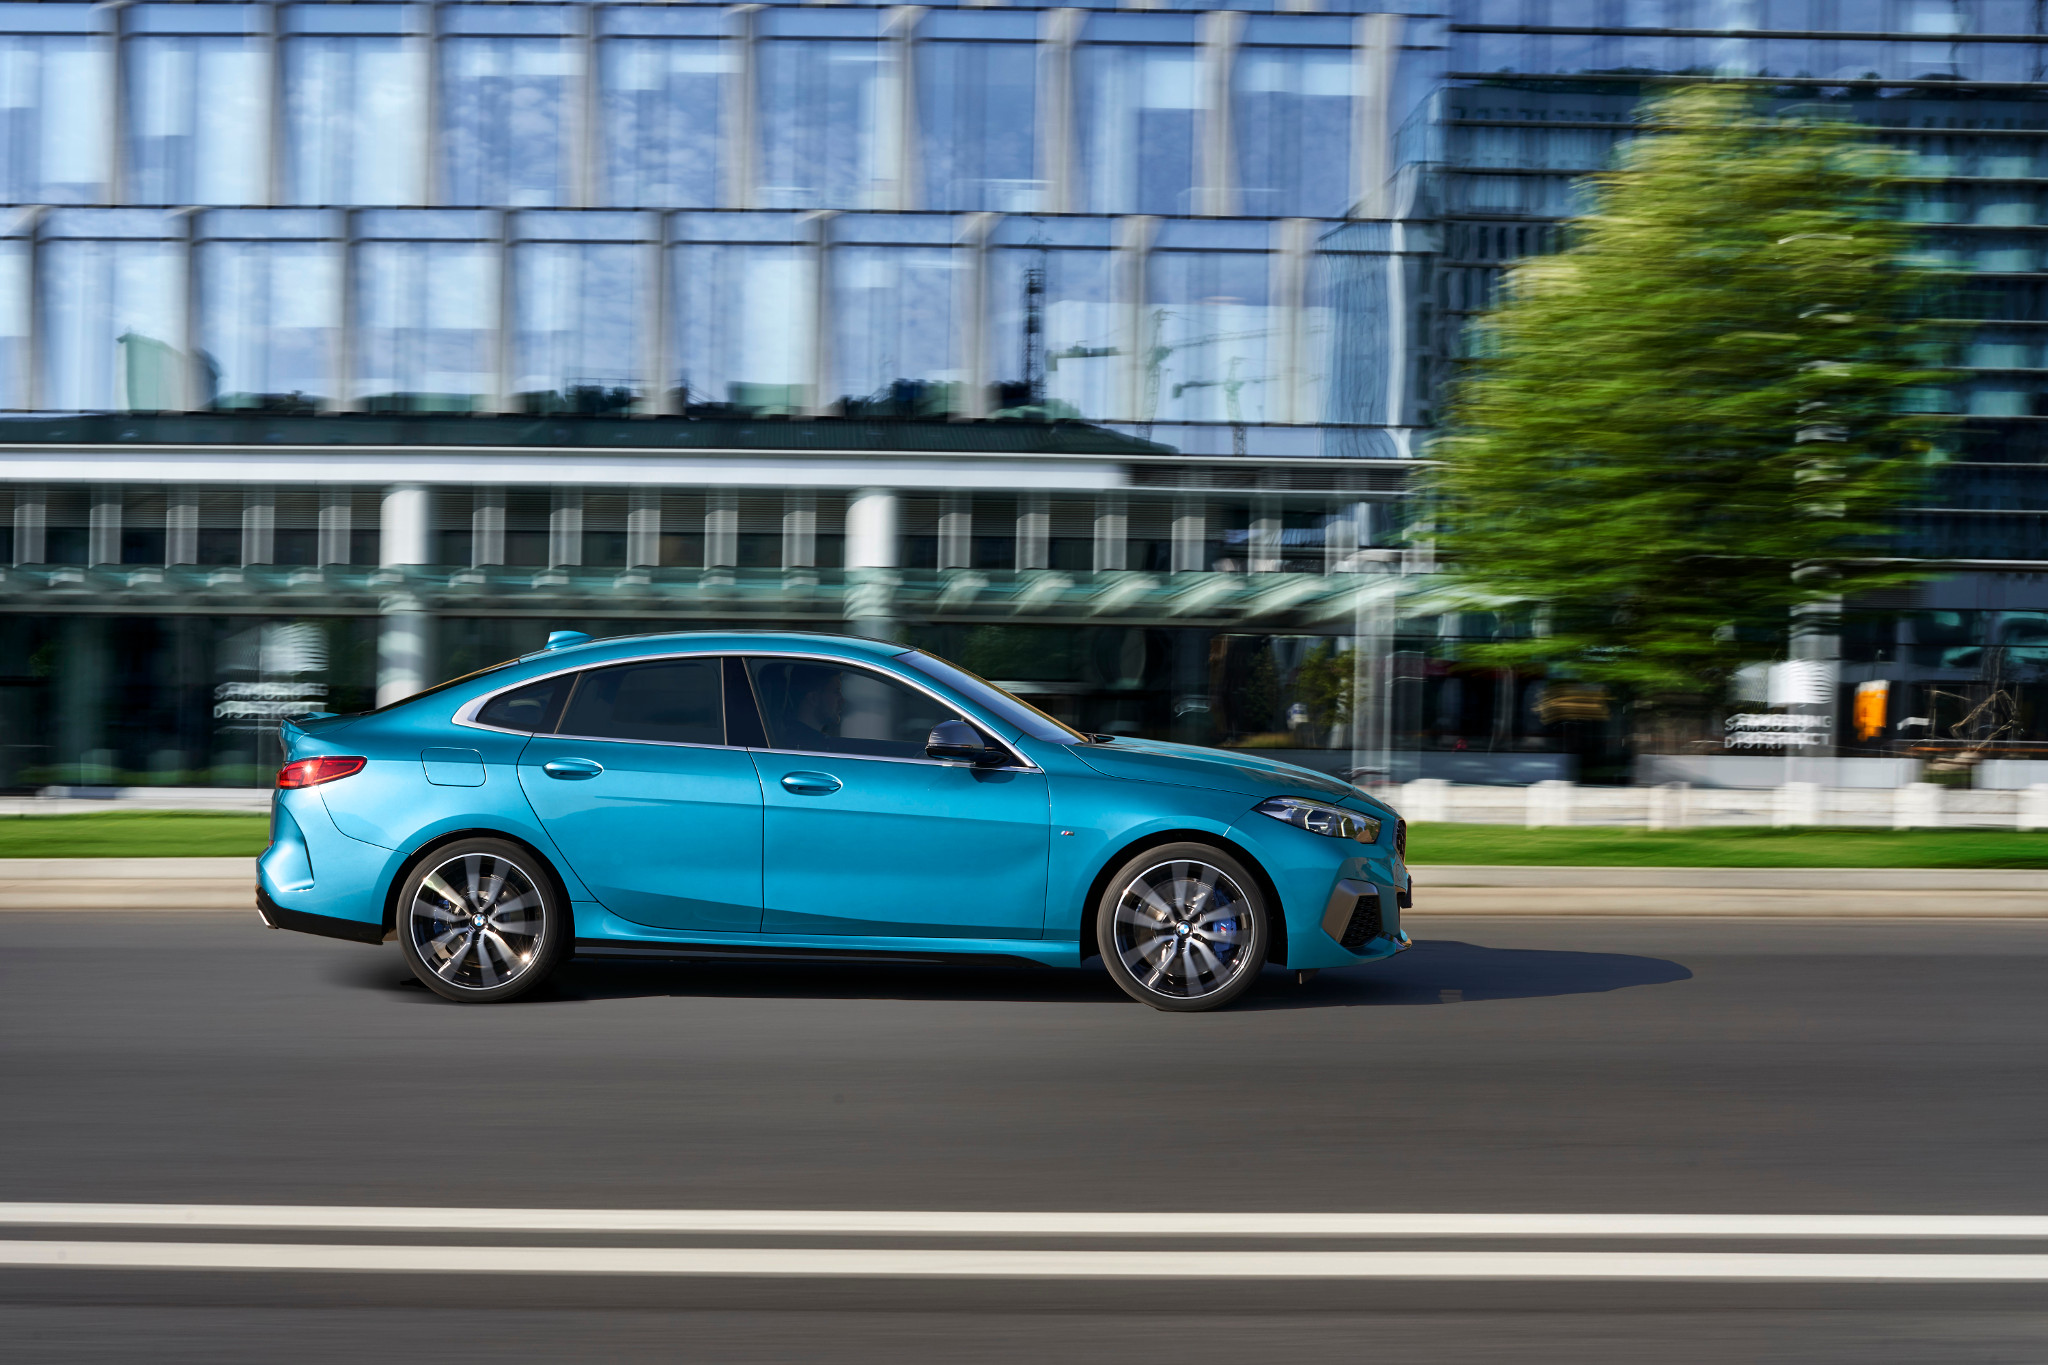 2020 BMW 2 Series Gran Coupe: Small But Spendy